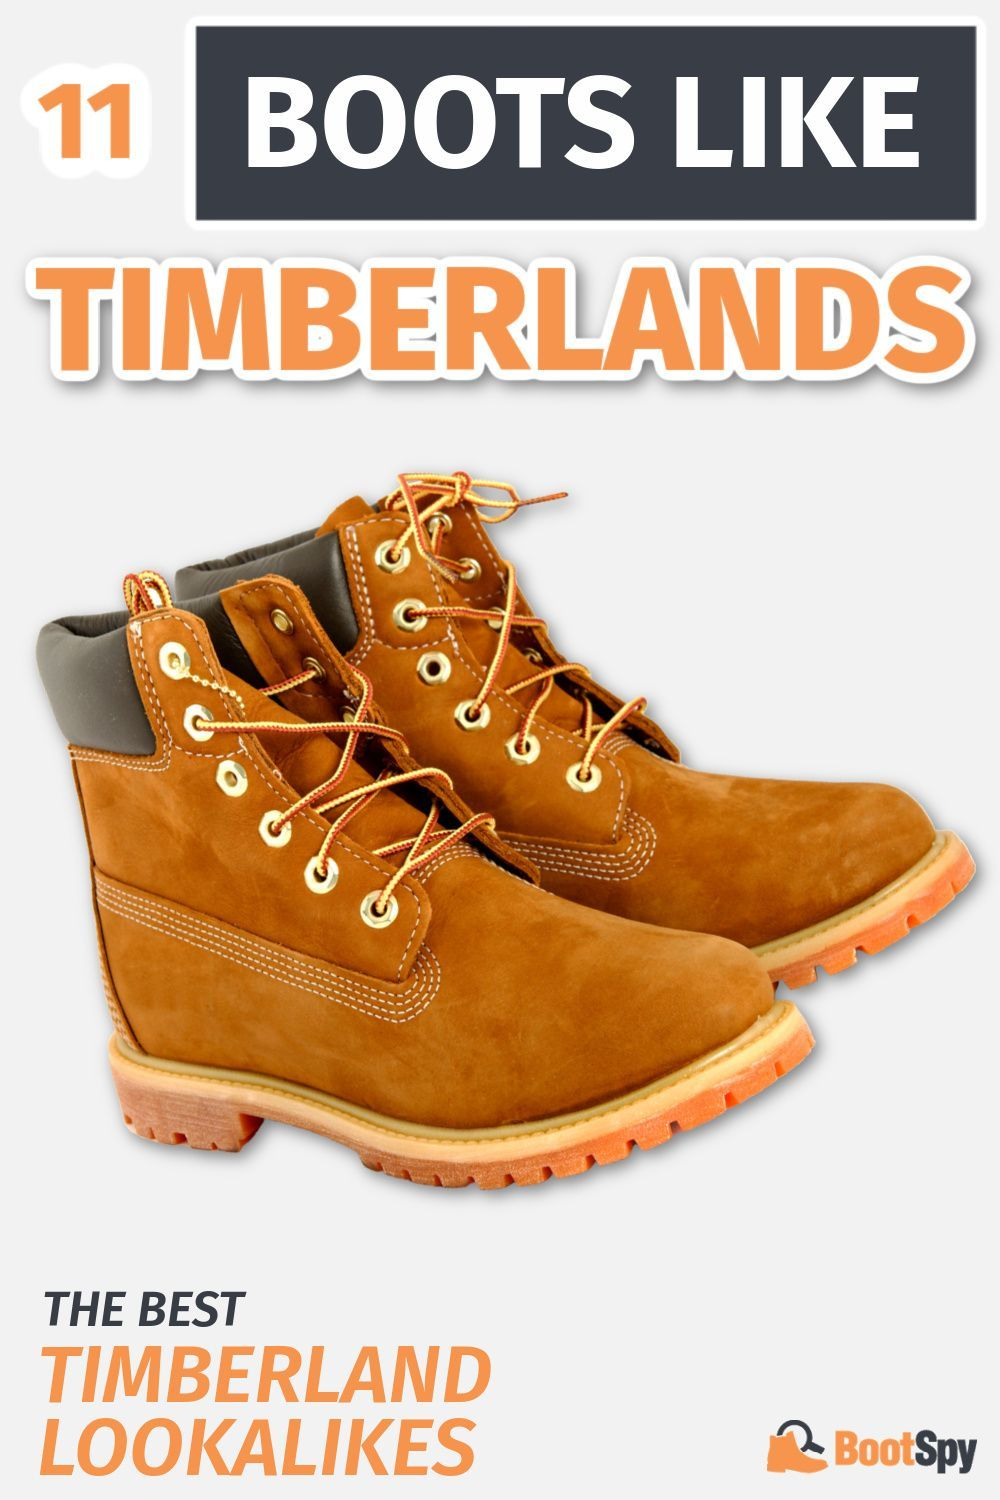 11 Boots Like Timberlands: The Best